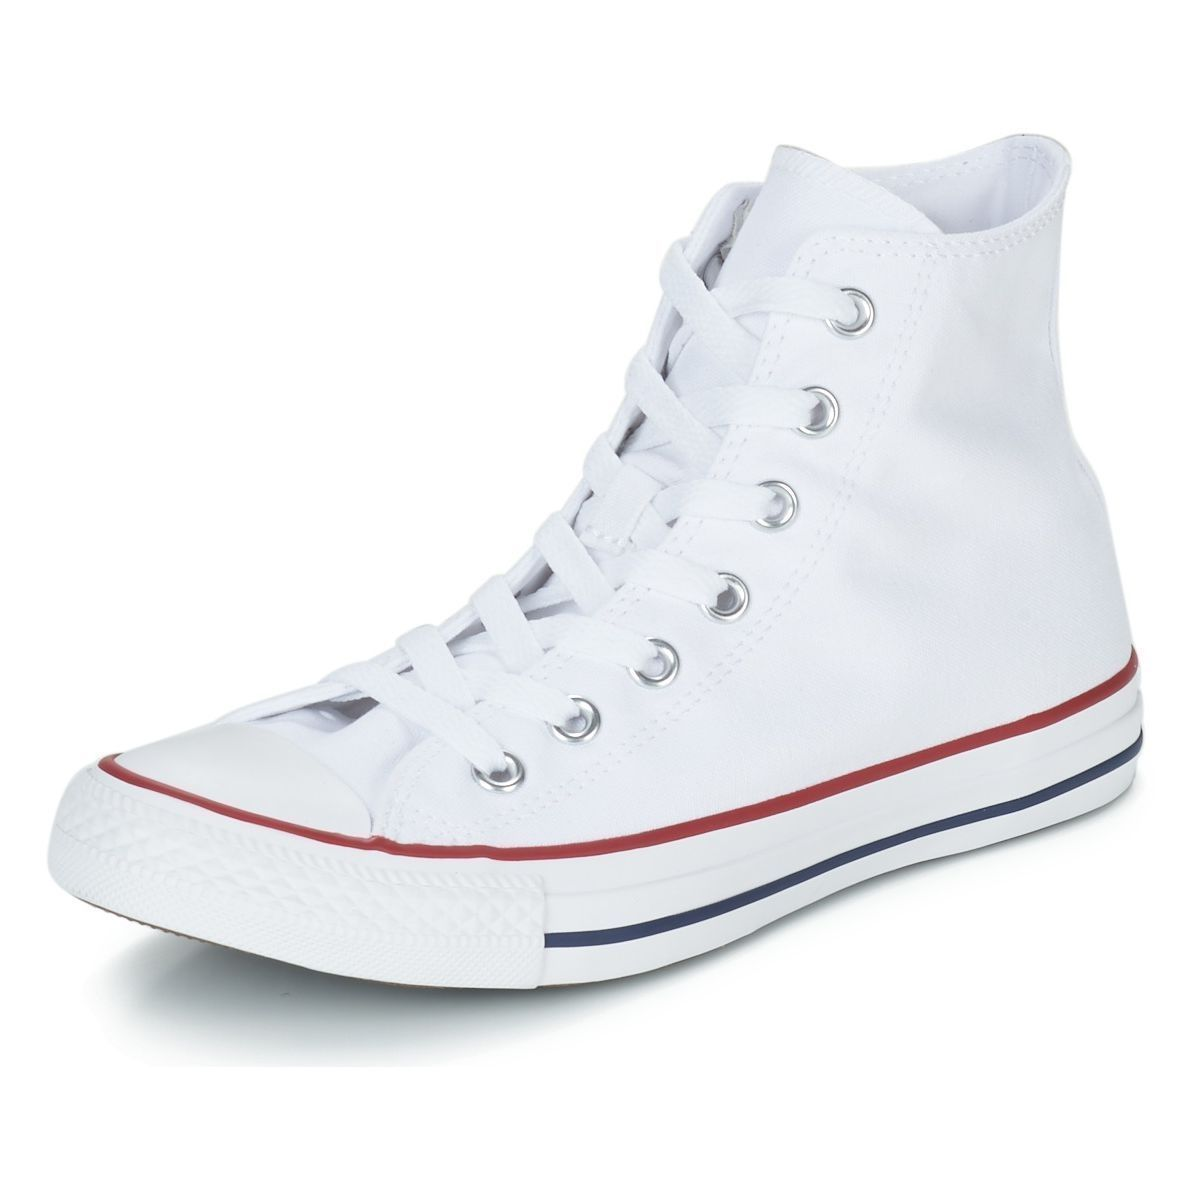 Converse fille ctas all star hi blanc1629802_2